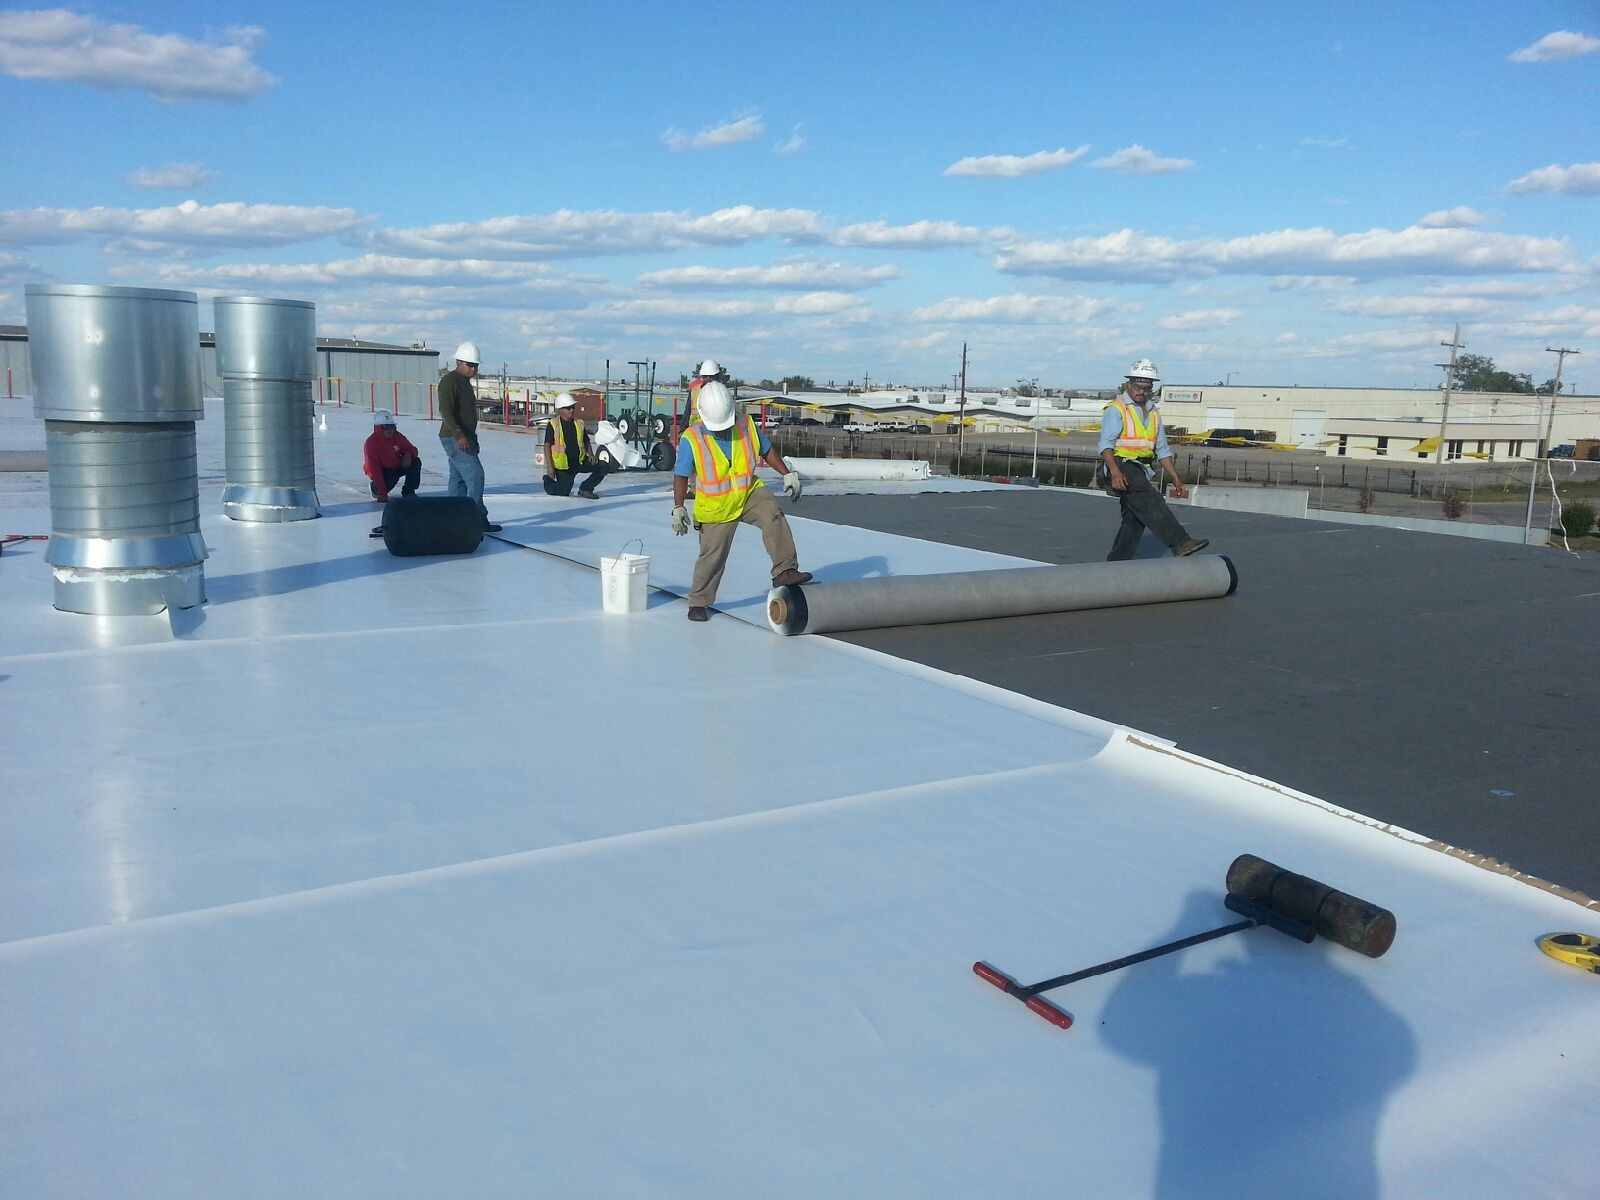 Commercial roofers working on a commercial roof